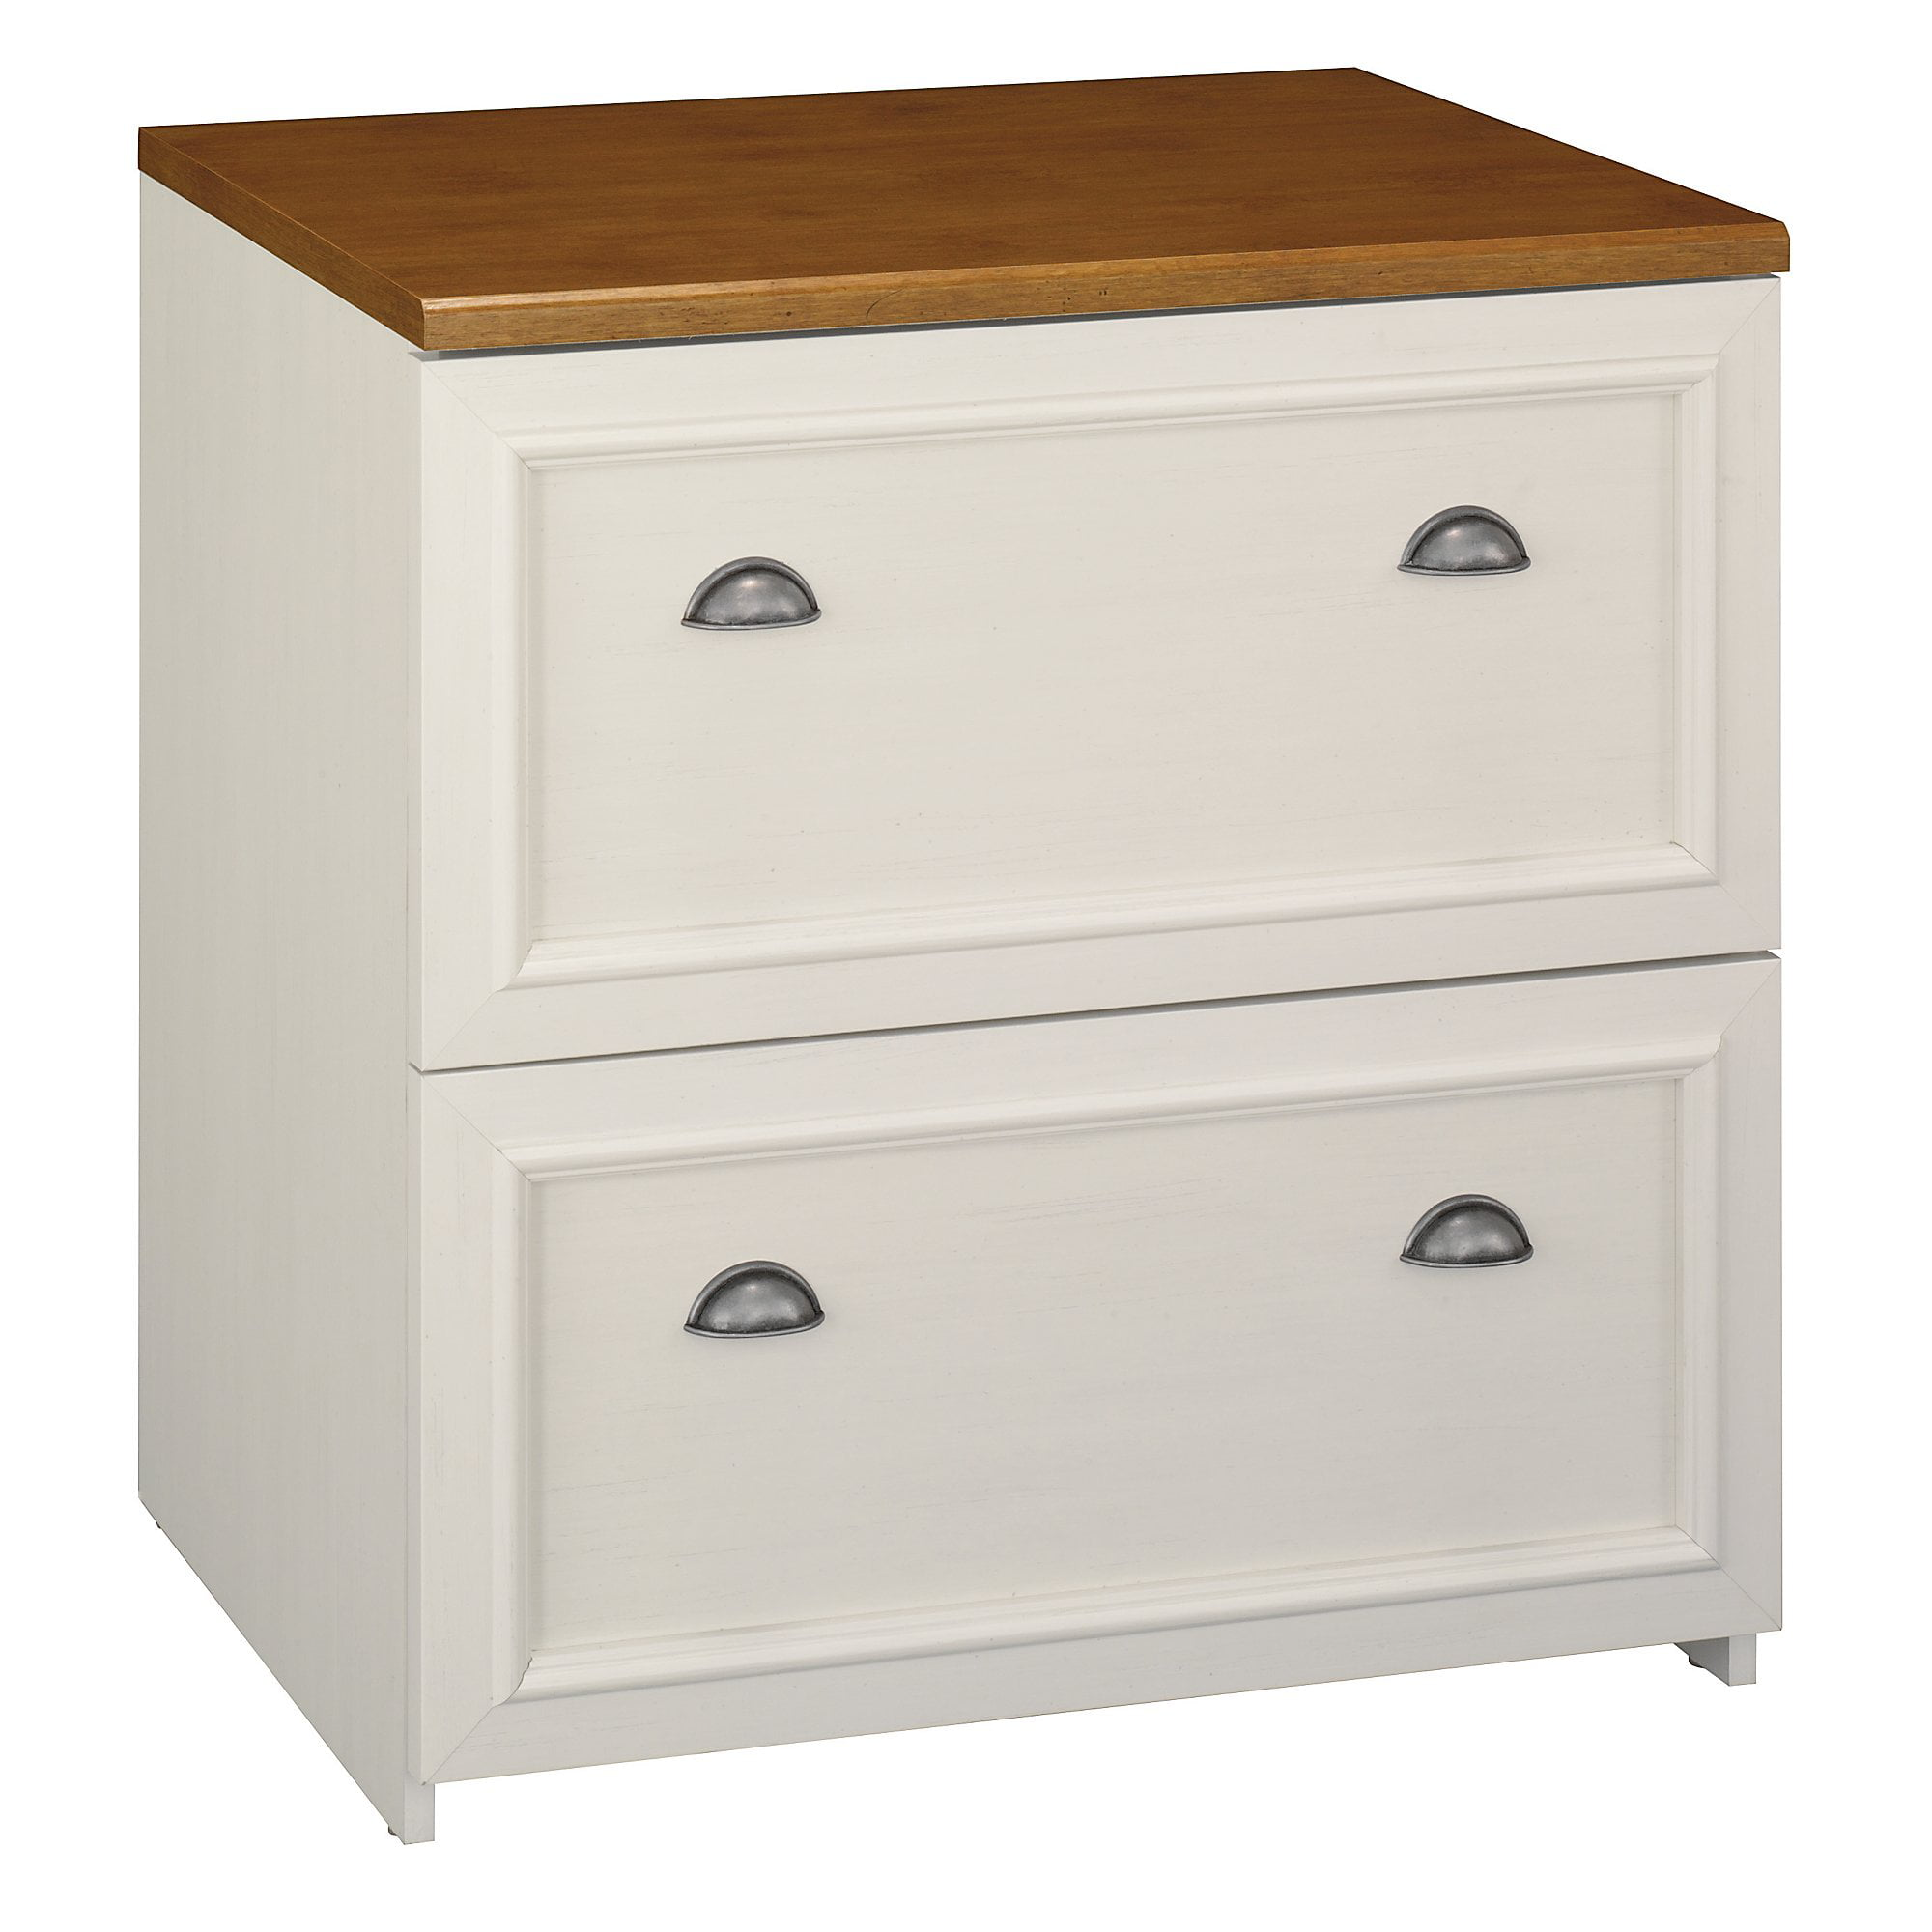 Genial Top Rated Filing Cabinets